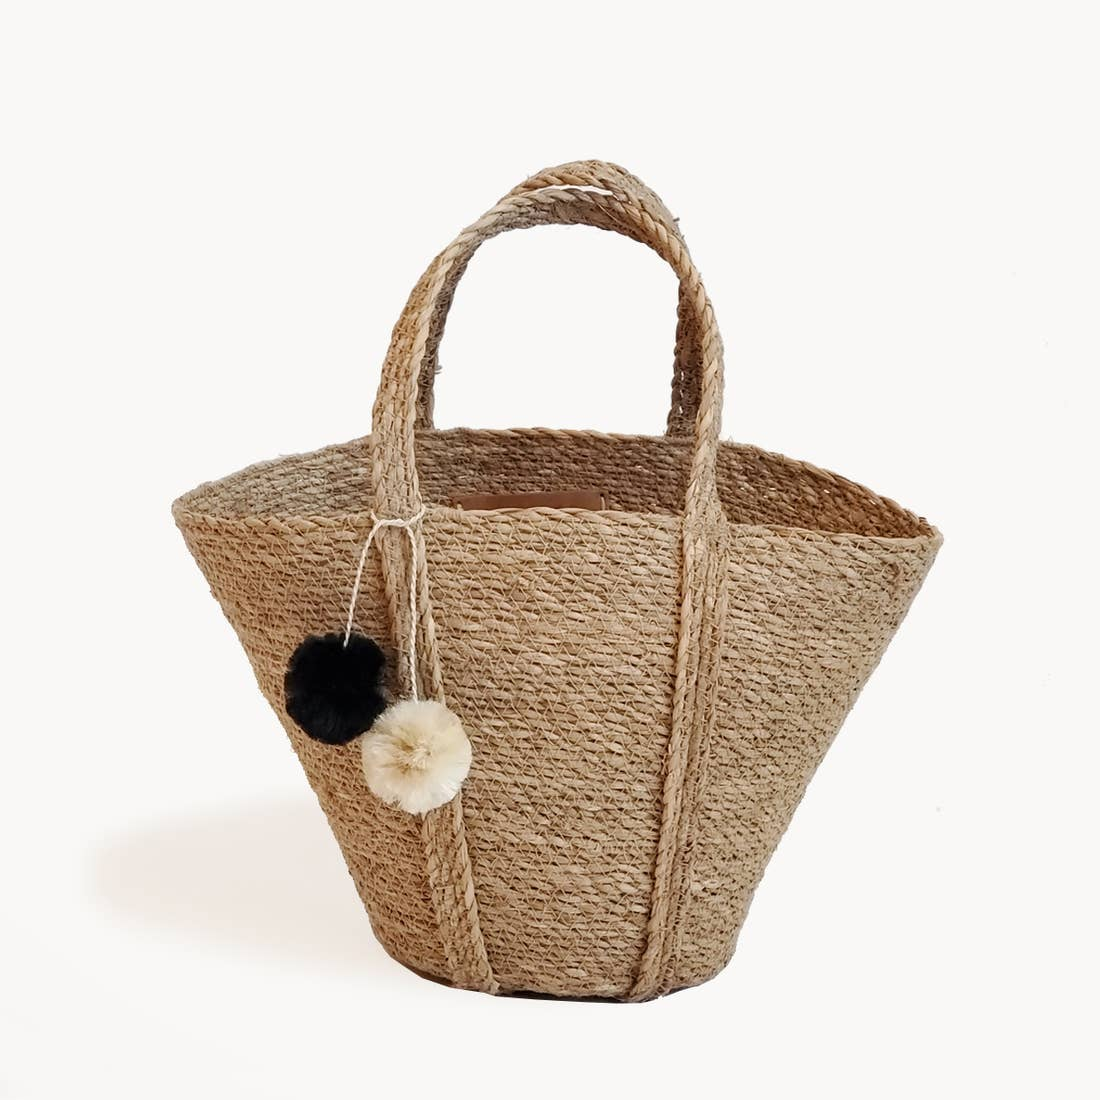 Eco-friendly Ethically Handmade  Organic Fair Trade Sustainable Savar Jute Basket Tote